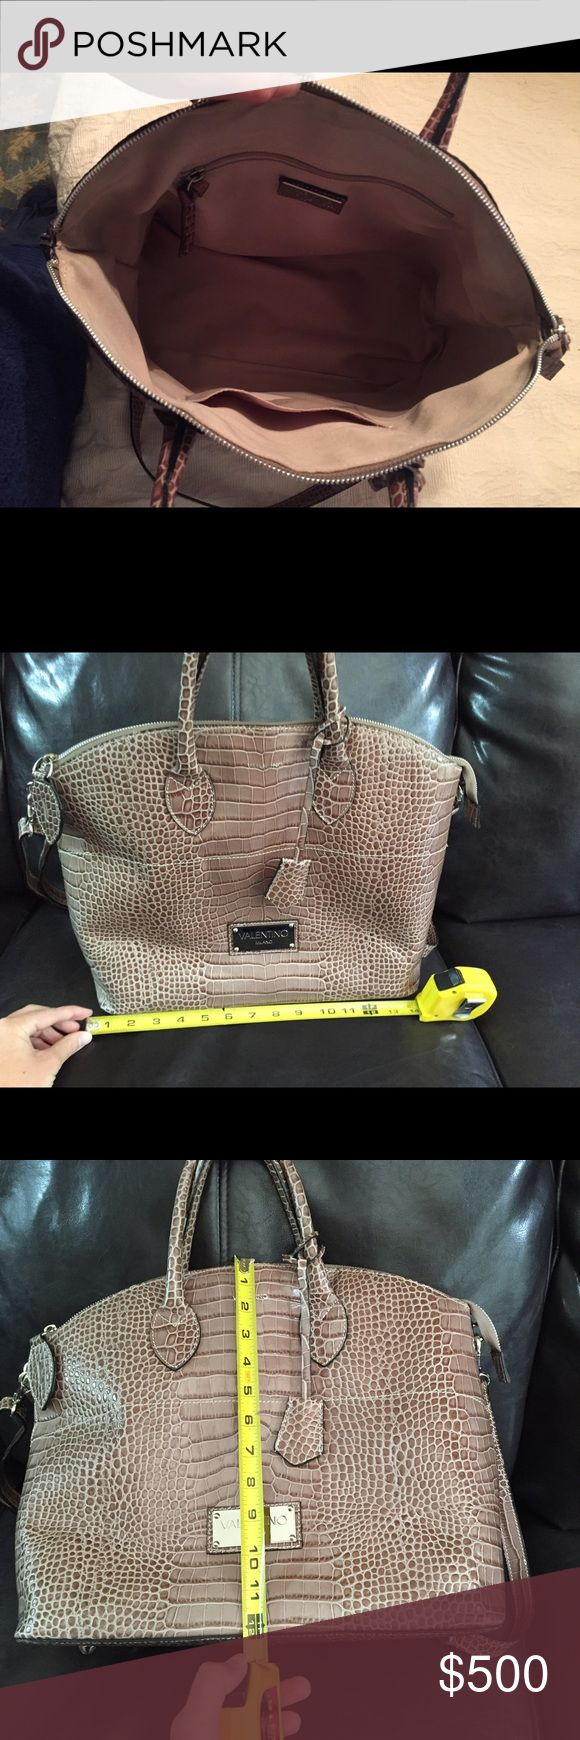 Valentino purse new without tags ONE DAY SALE ONLY 100% authentic, Perfect condition, never used. From Neiman Marcus. Originally over $1,000. Let me know if you have any questions! I will also include the dust bag :). Thanks! Valentino Bags Shoulder Bags